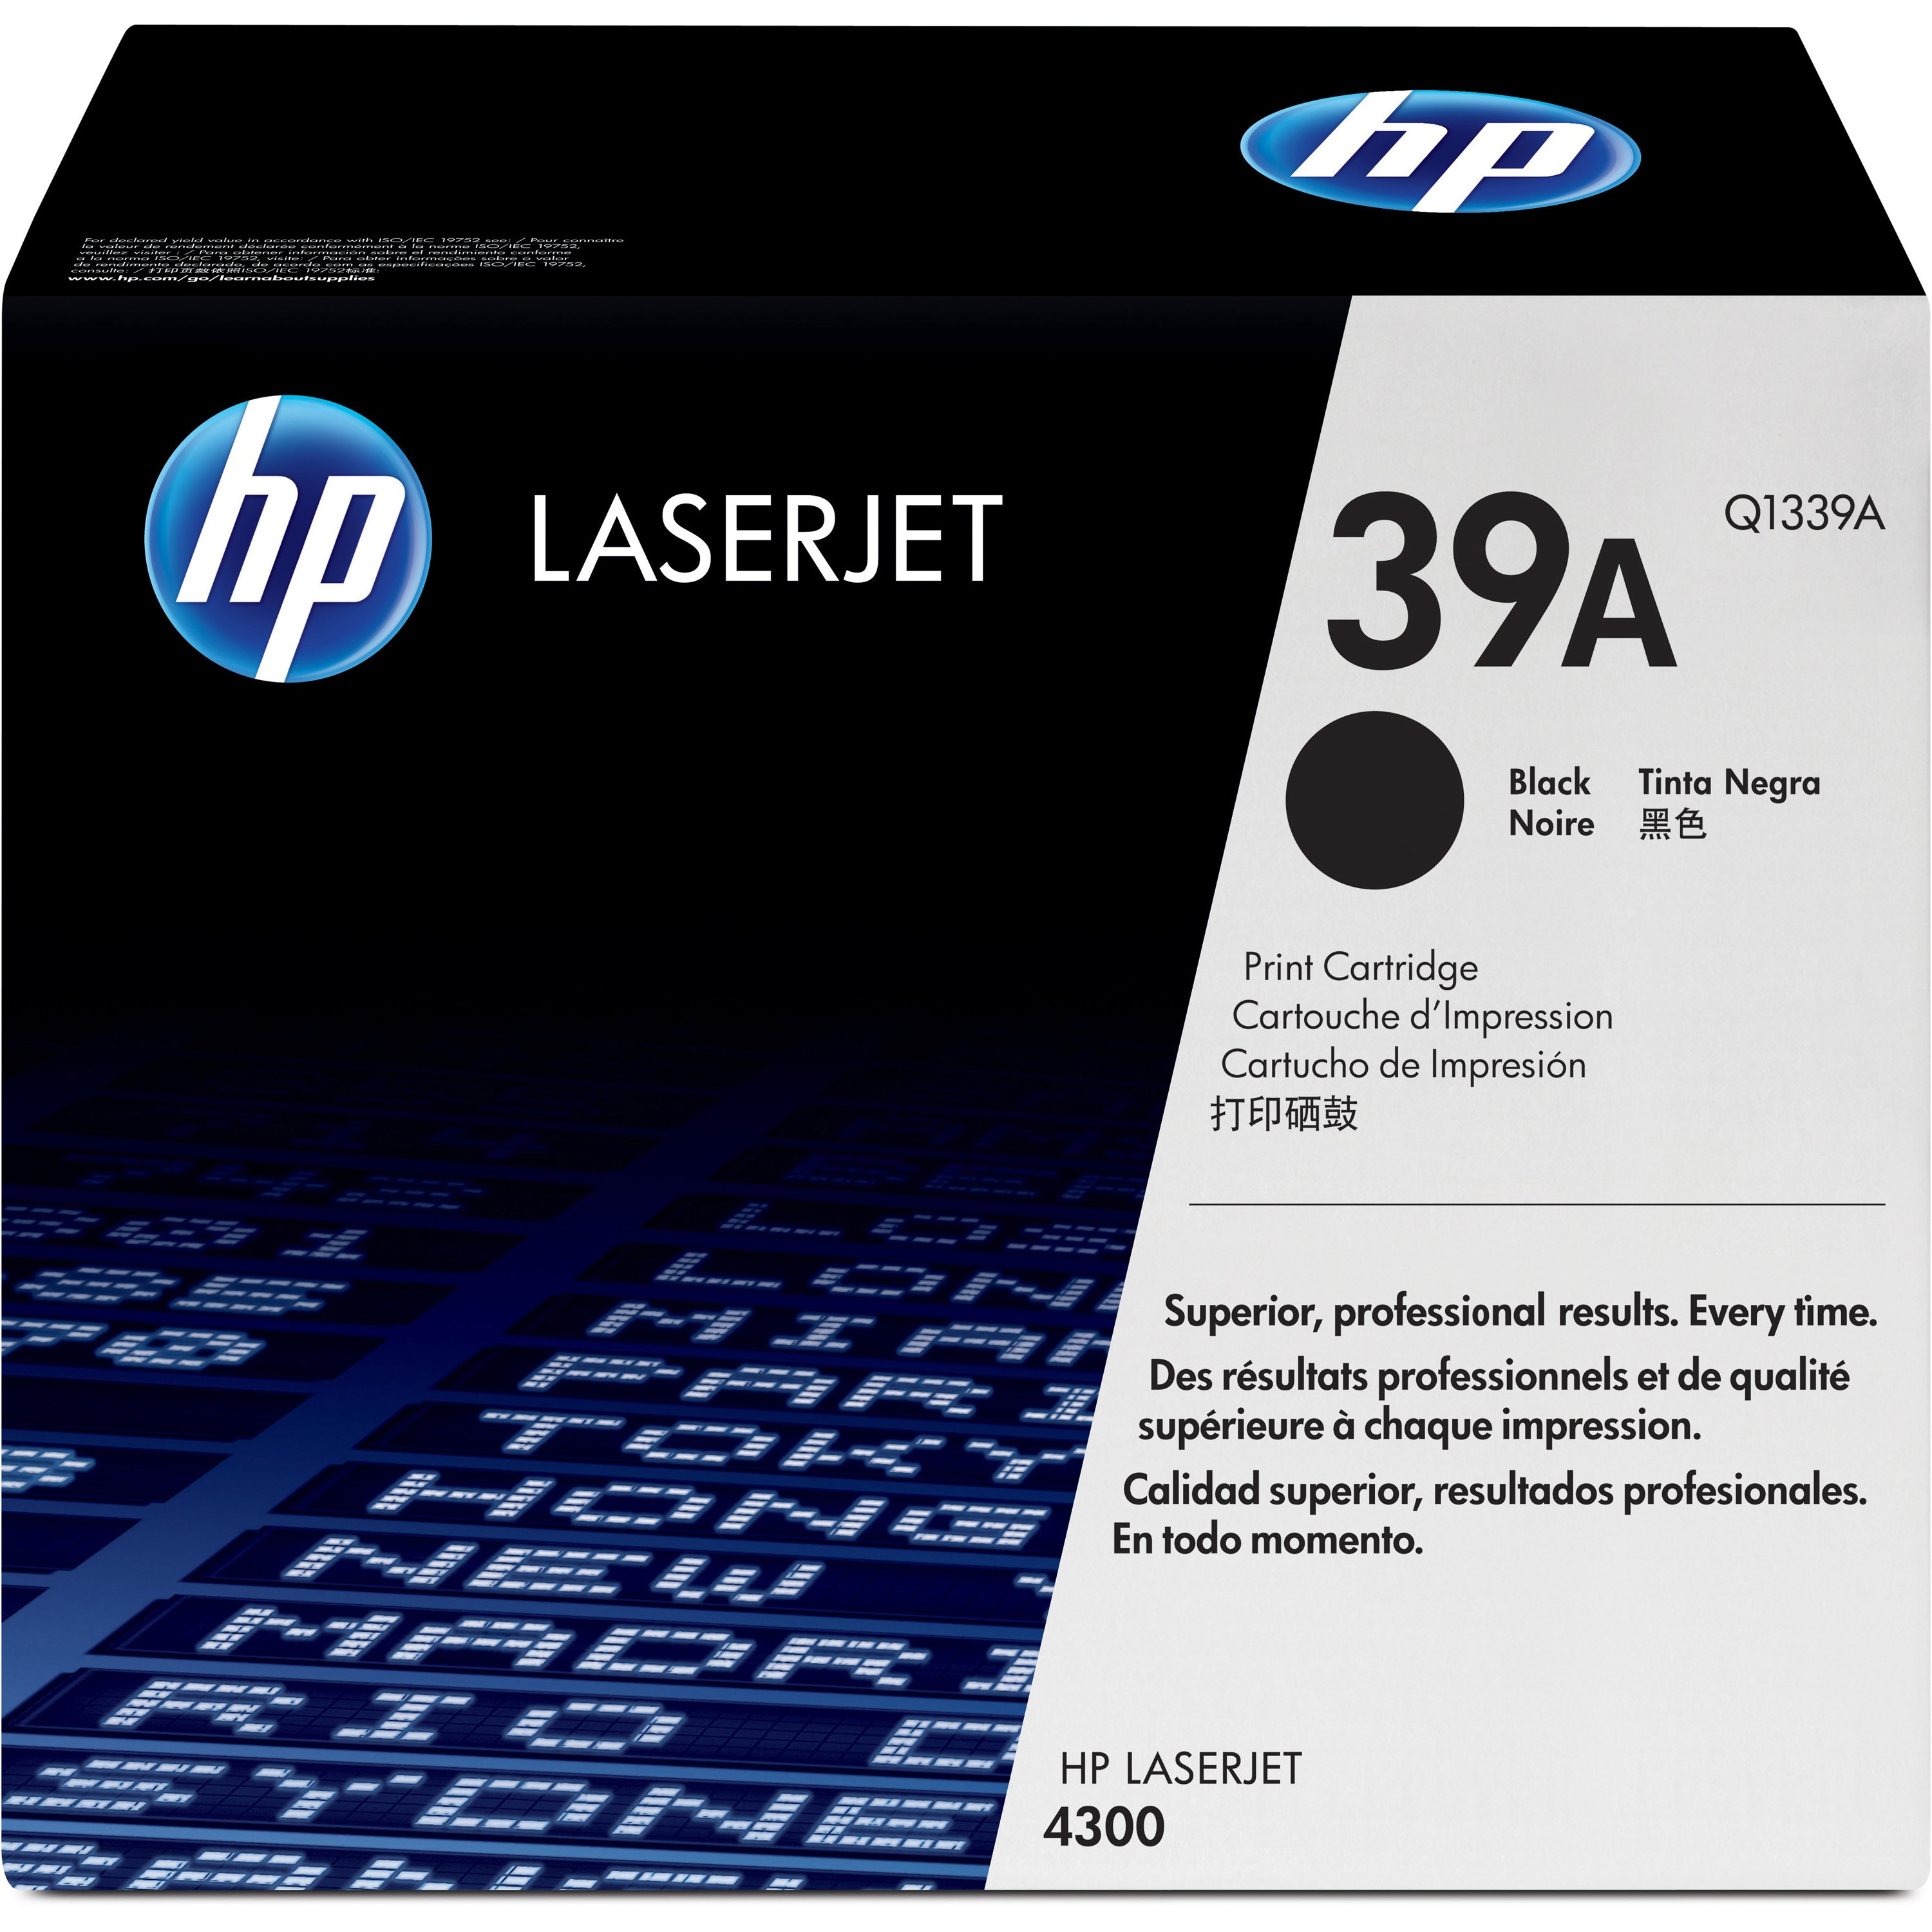 HP, HEWQ1339A, Q1339A Toner Cartridge, 1 Each